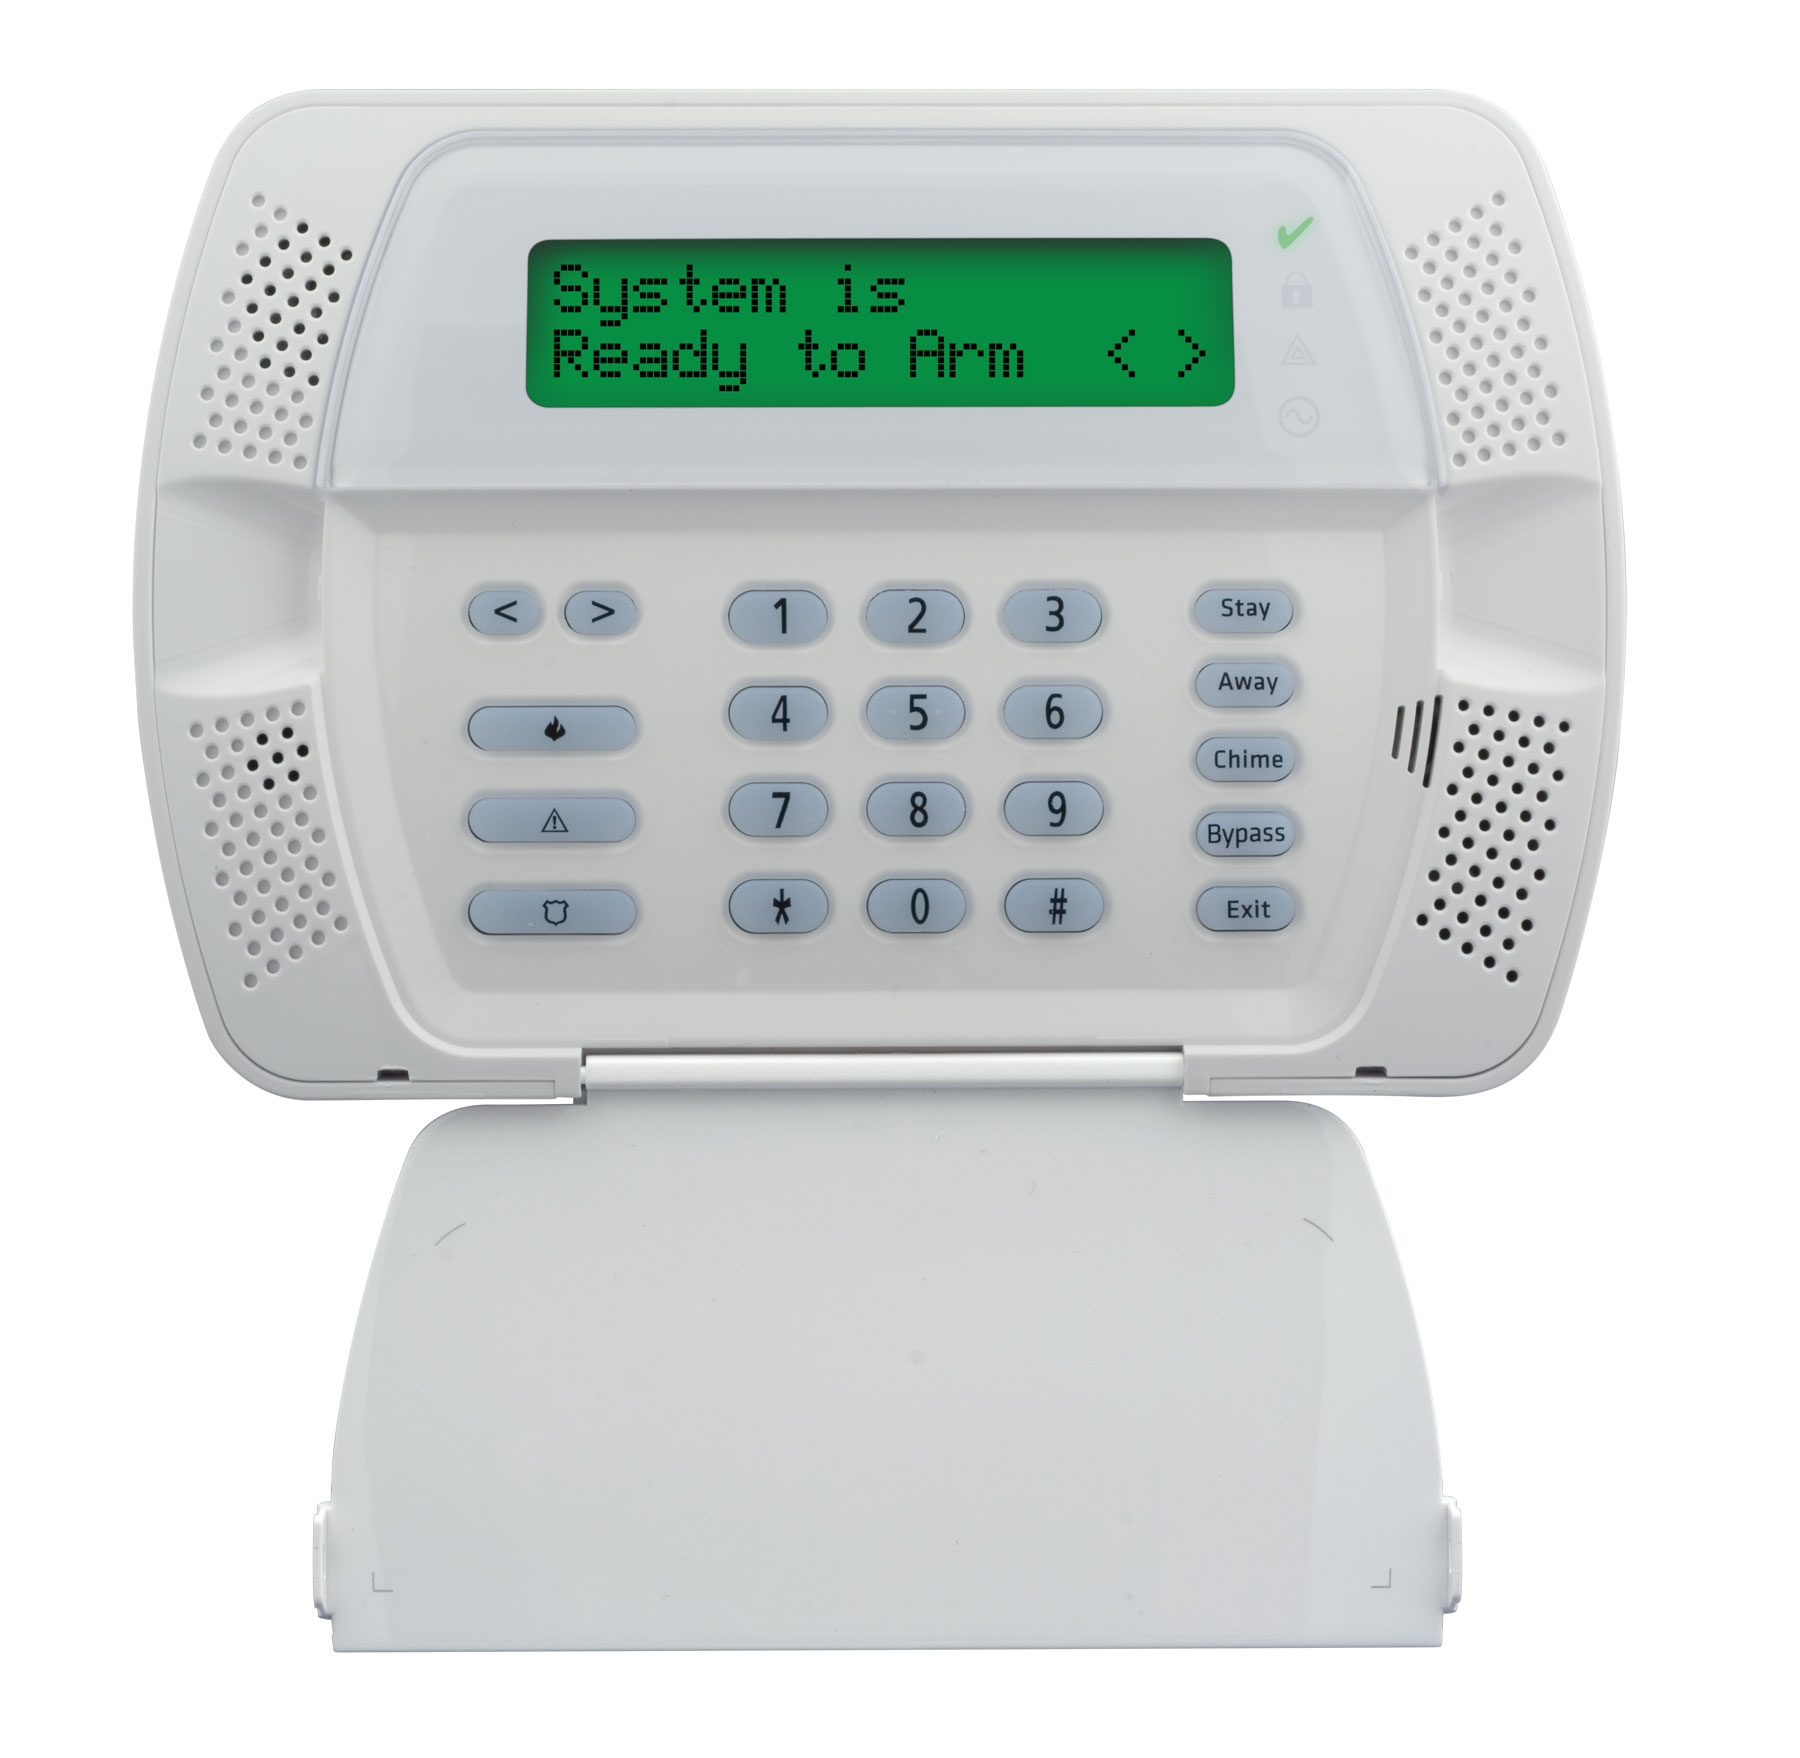 Gresham home security systems, Gresham alarm monitoring company. Gresham fire alarm systems.